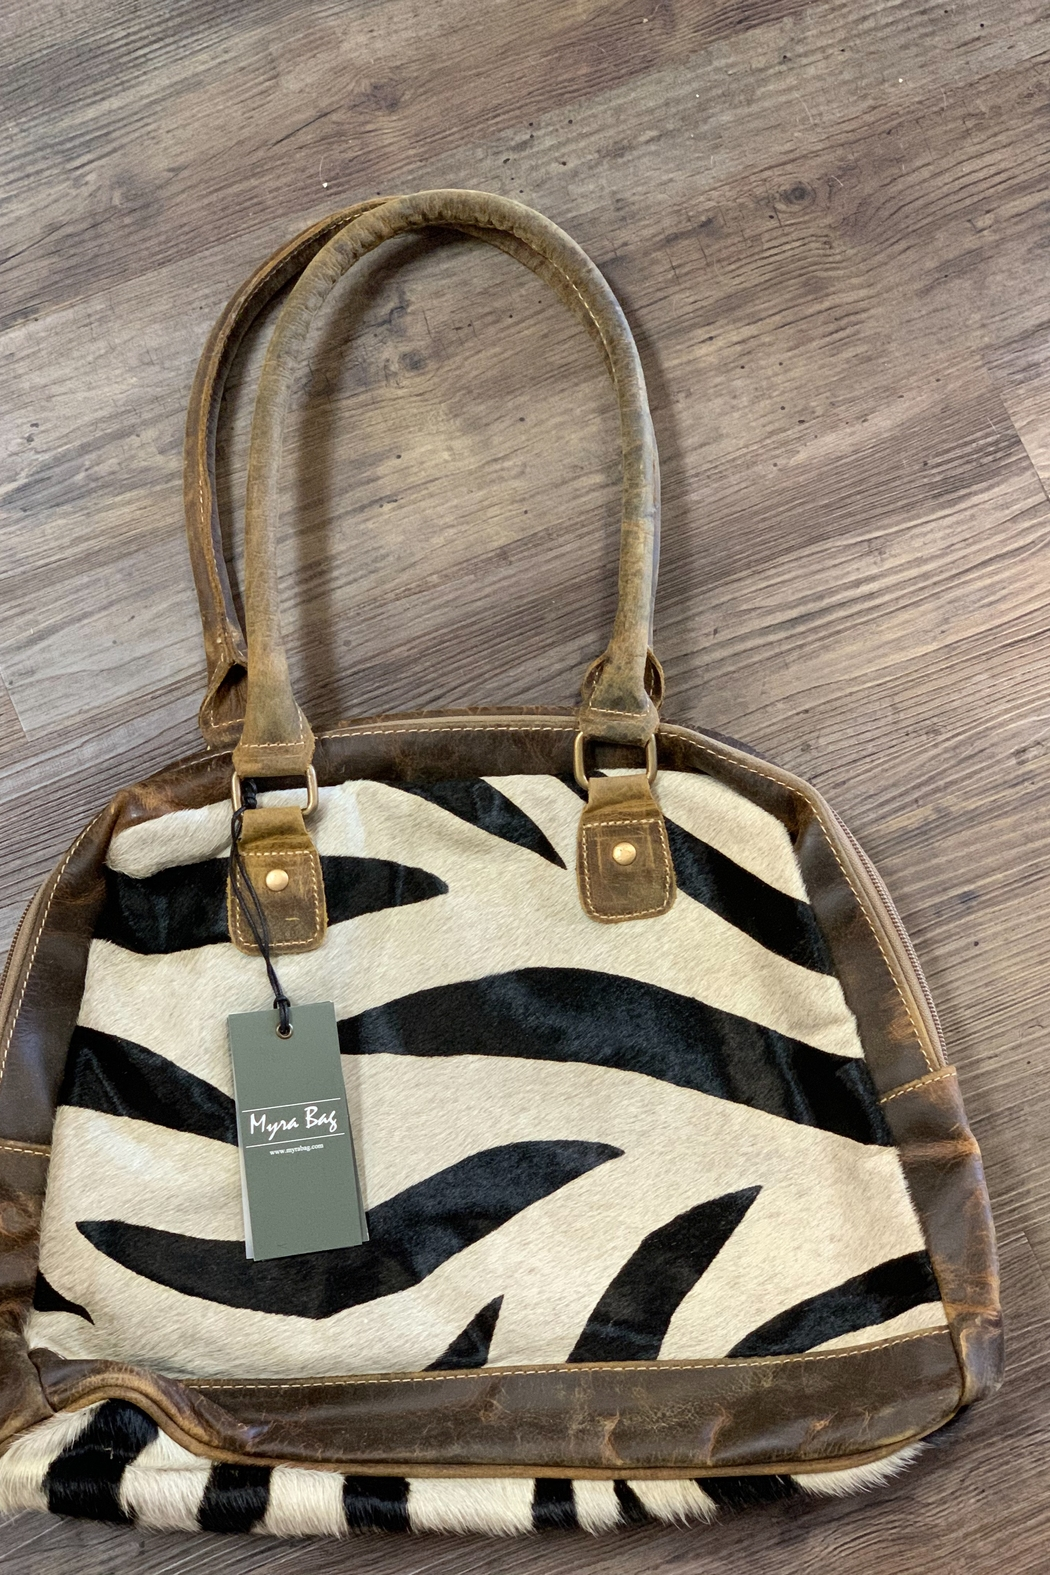 Myra Bag Zebra Style Hairon Bag From Georgia By Charming Chics Boutique Shoptiques Canvas, 1 compartment, 1 zipper pocket, 2 open pockets top: zebra style hairon bag